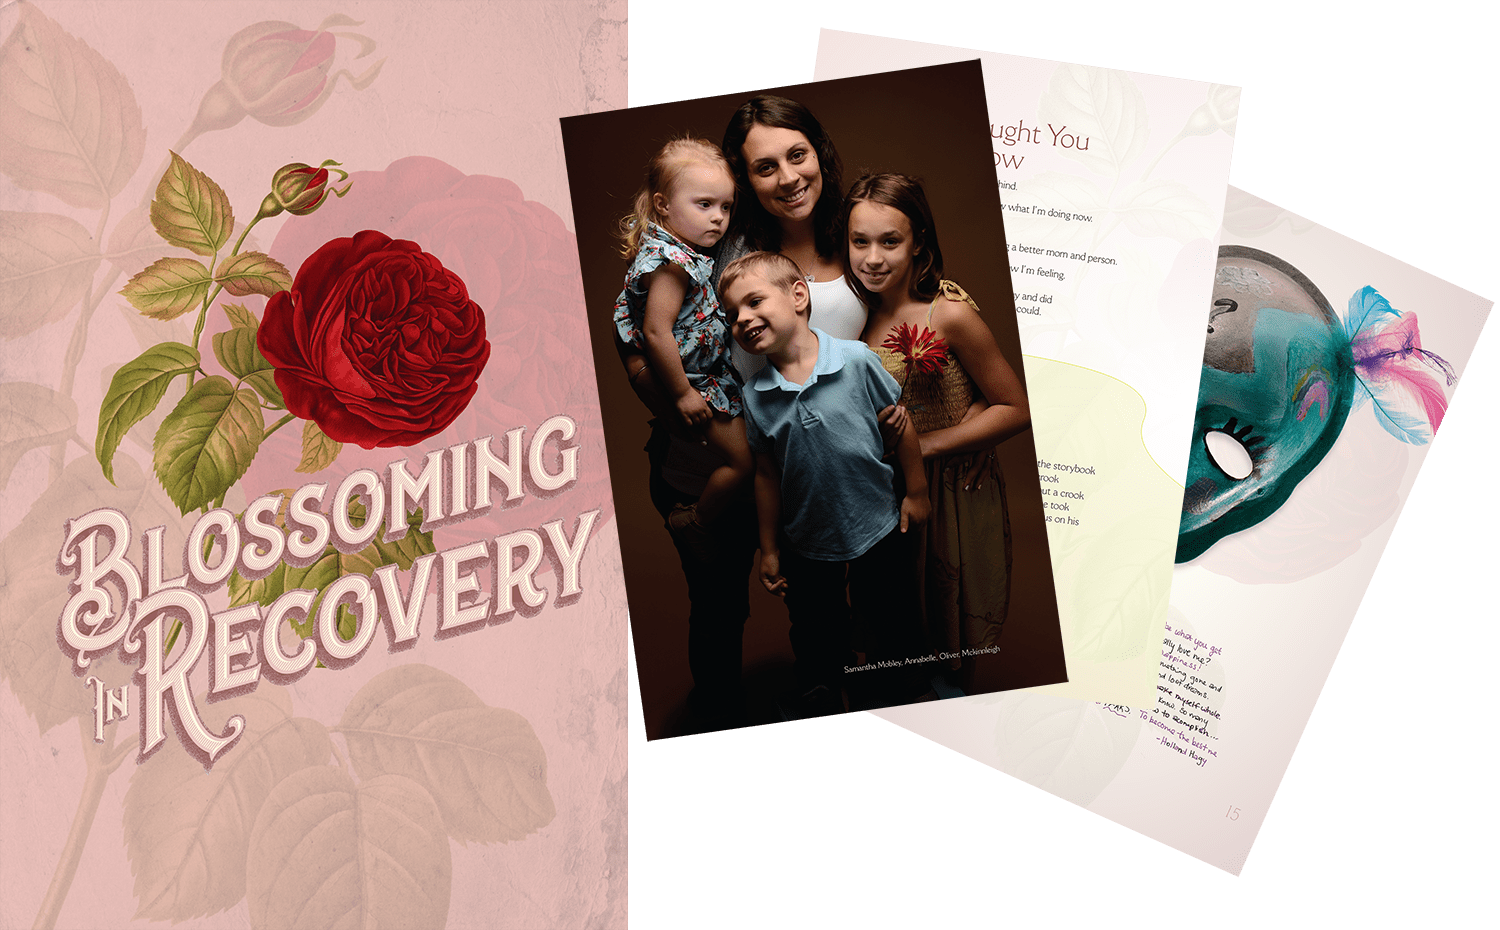 """The Applied Theatre Center partnered with Serenity Place in 2020 to produce """"Blossoming In Recovery"""", which featured writing and art by Serenity Place residents, as well as professional studio photographs of the writers and artists."""